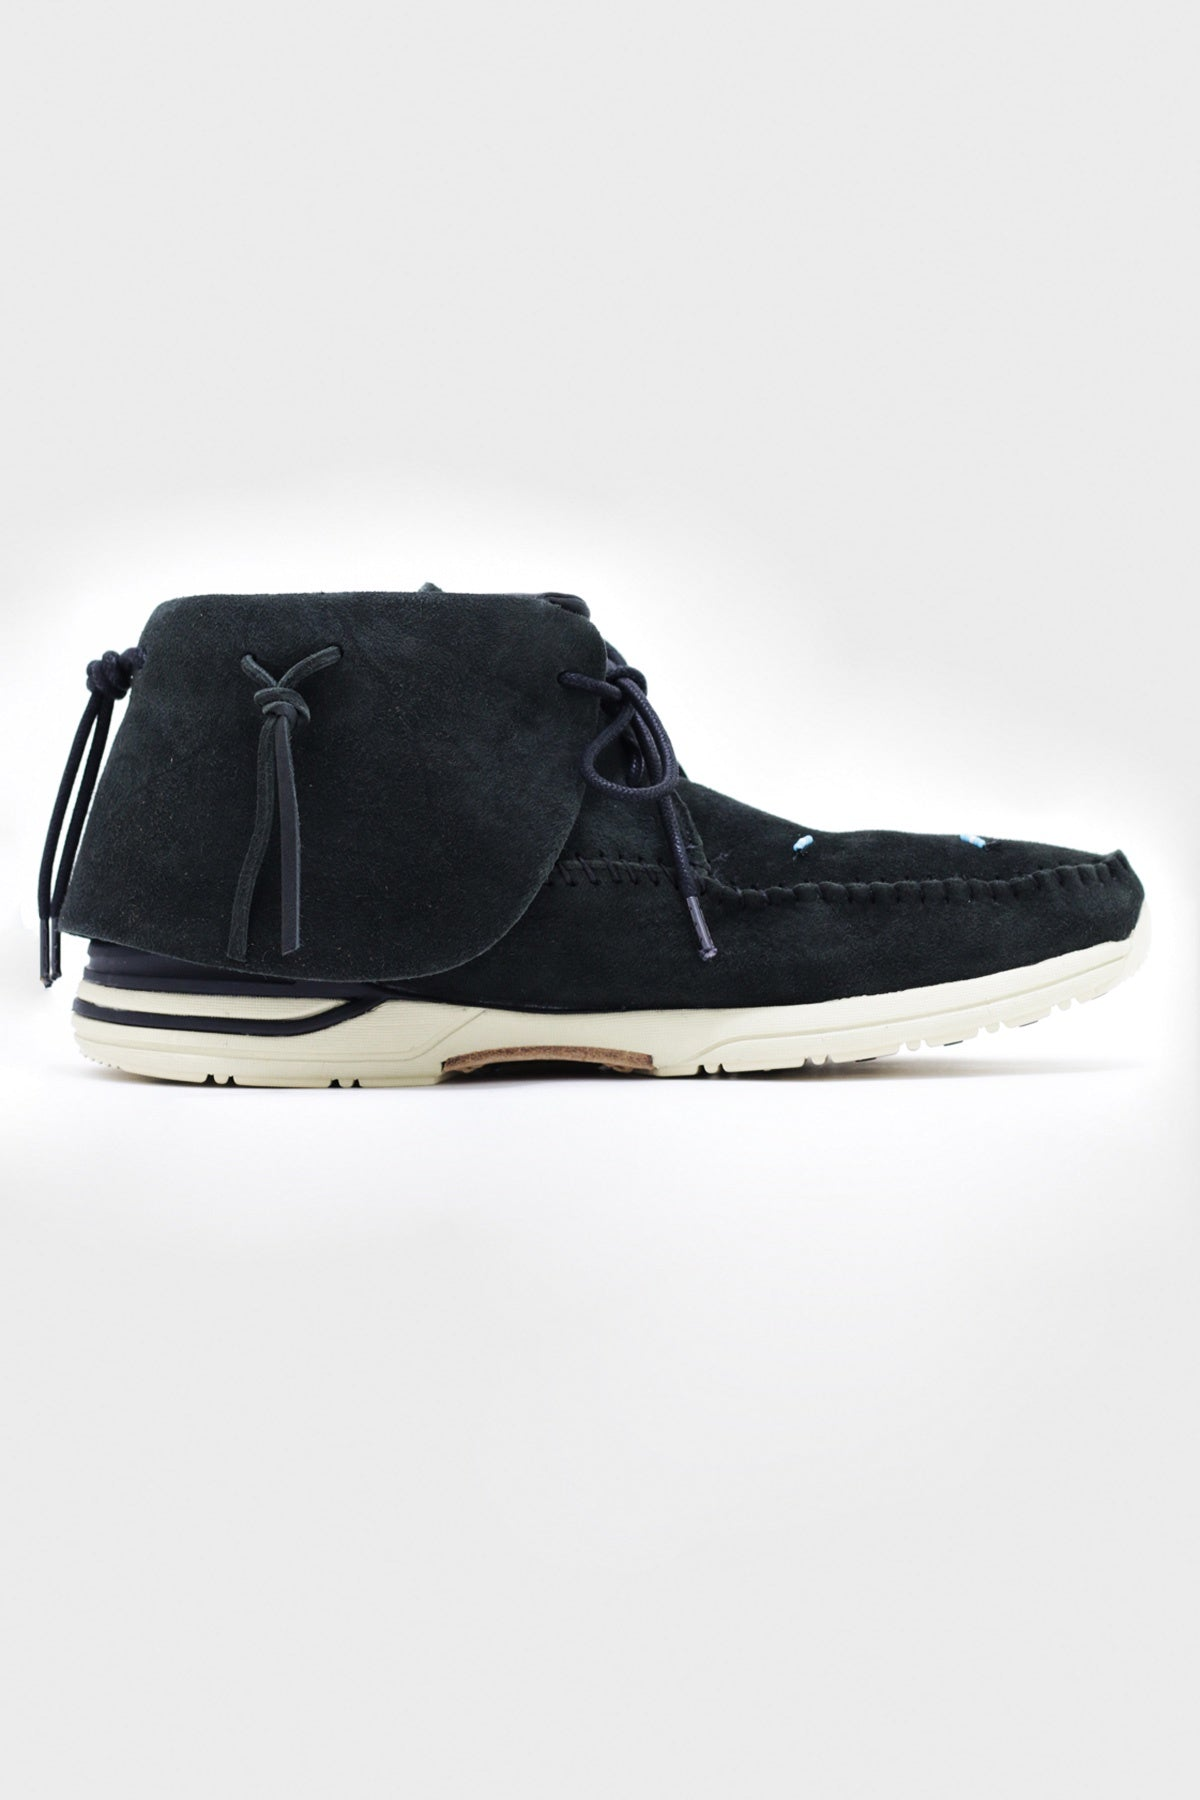 Visvim - FBT Lhamo - Folk Black - Canoe Club